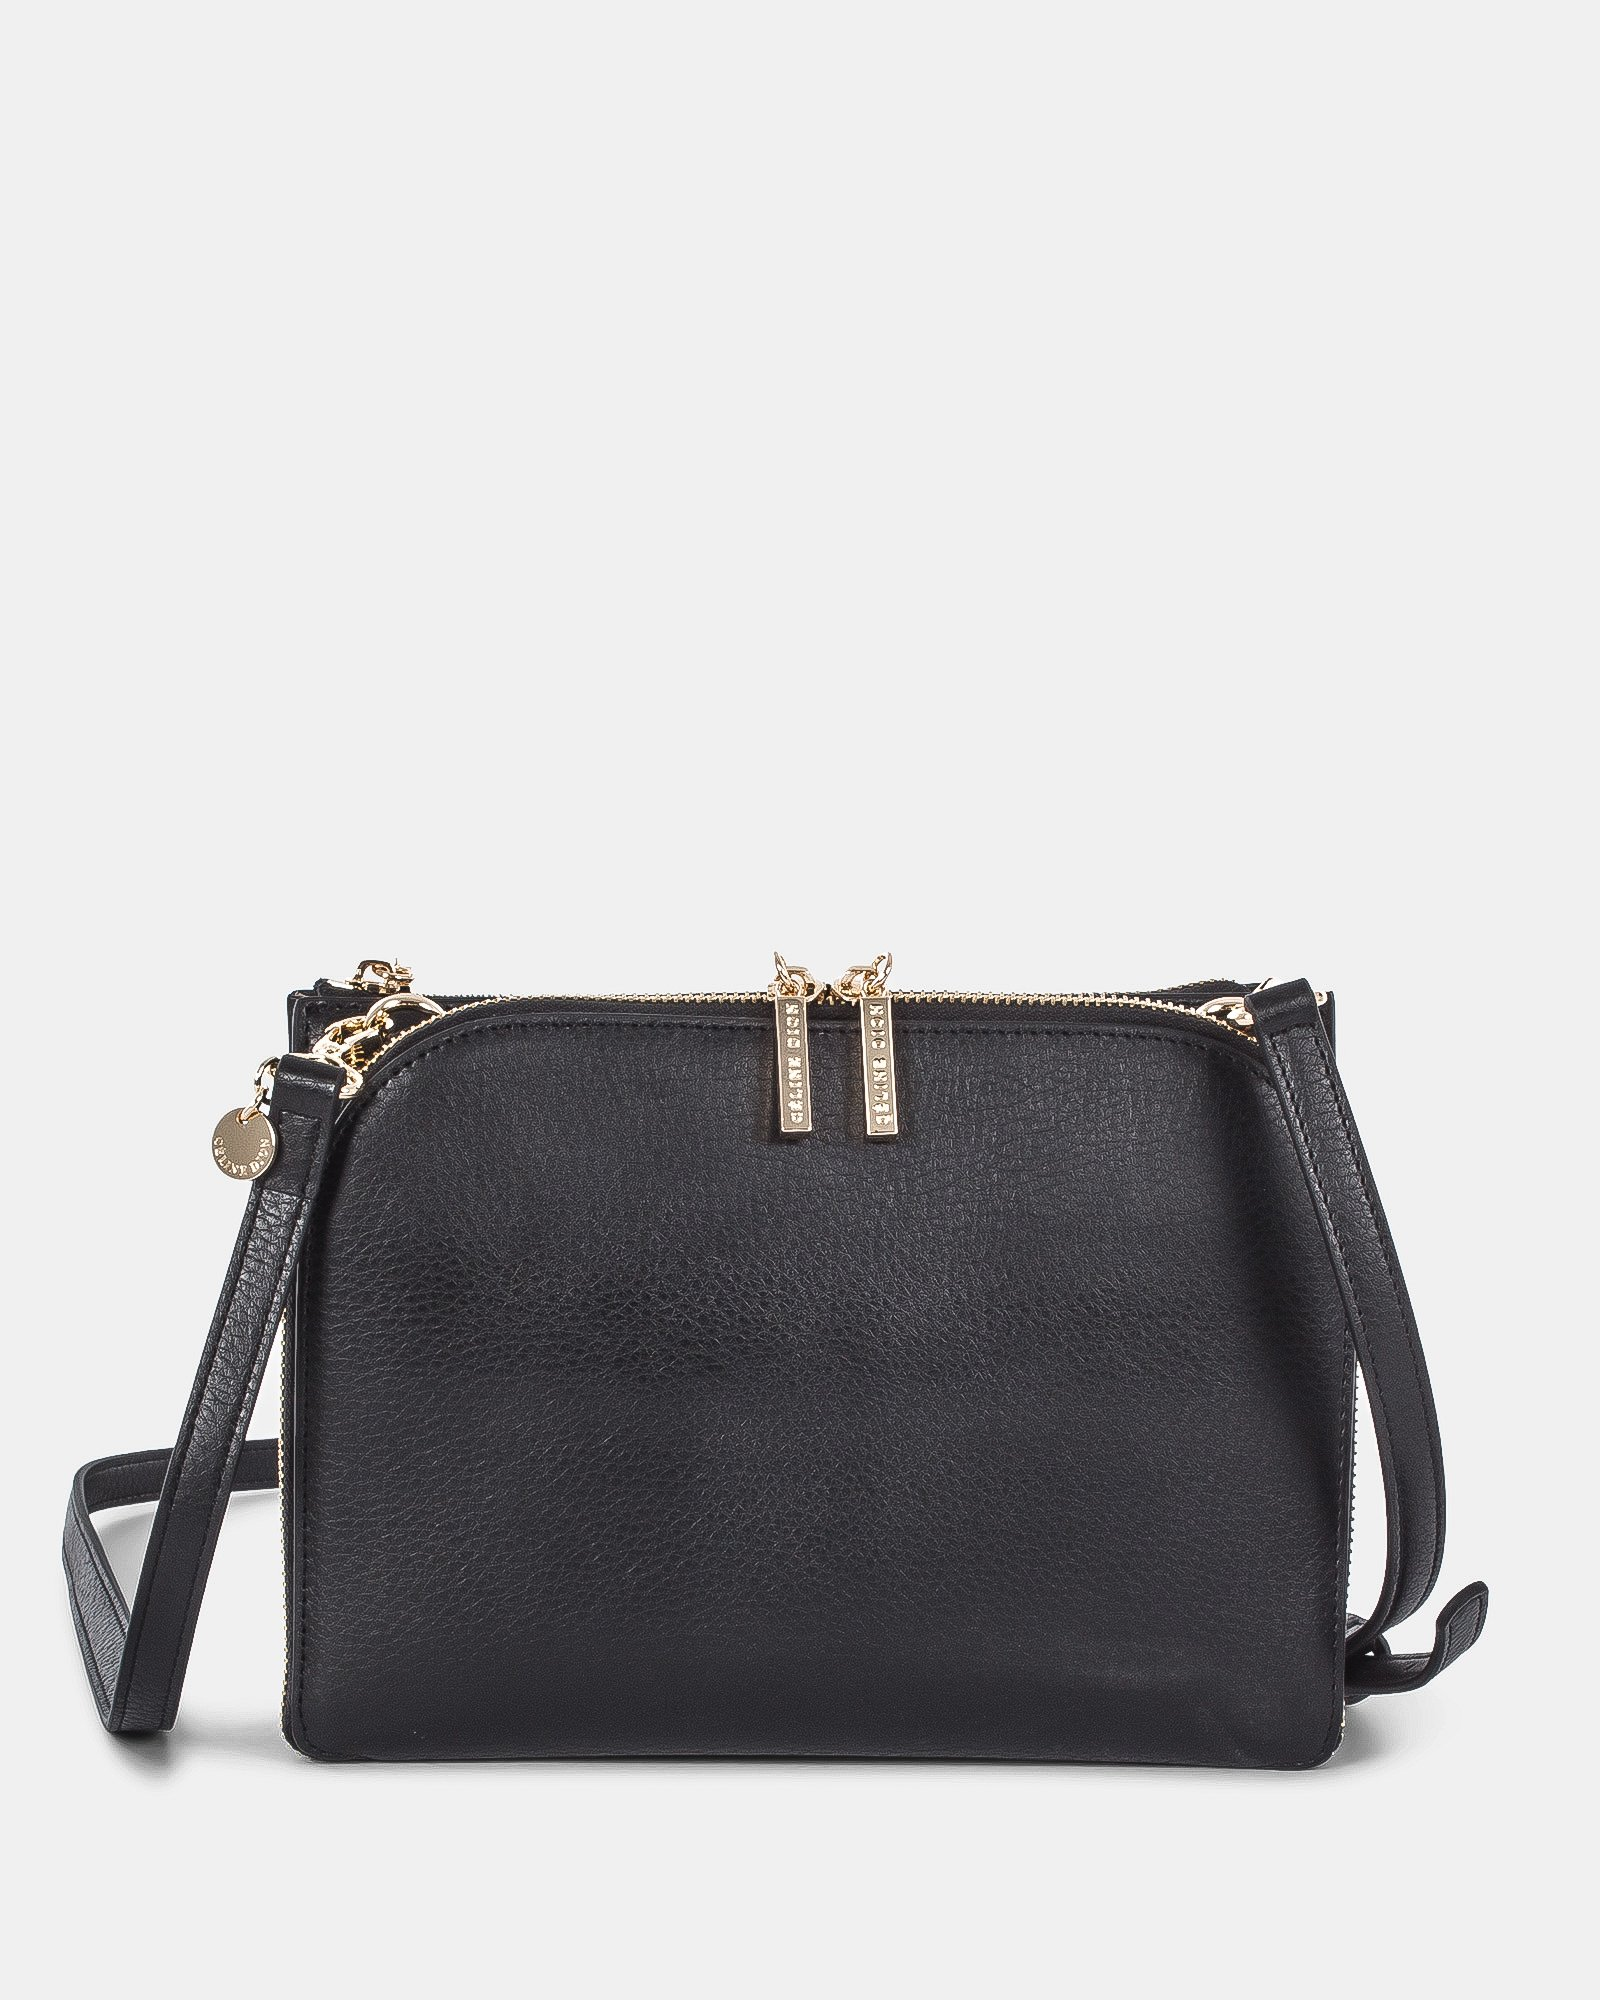 TRIAD - Crossbody with ajustable and removable strap - Black - Céline Dion - Zoom